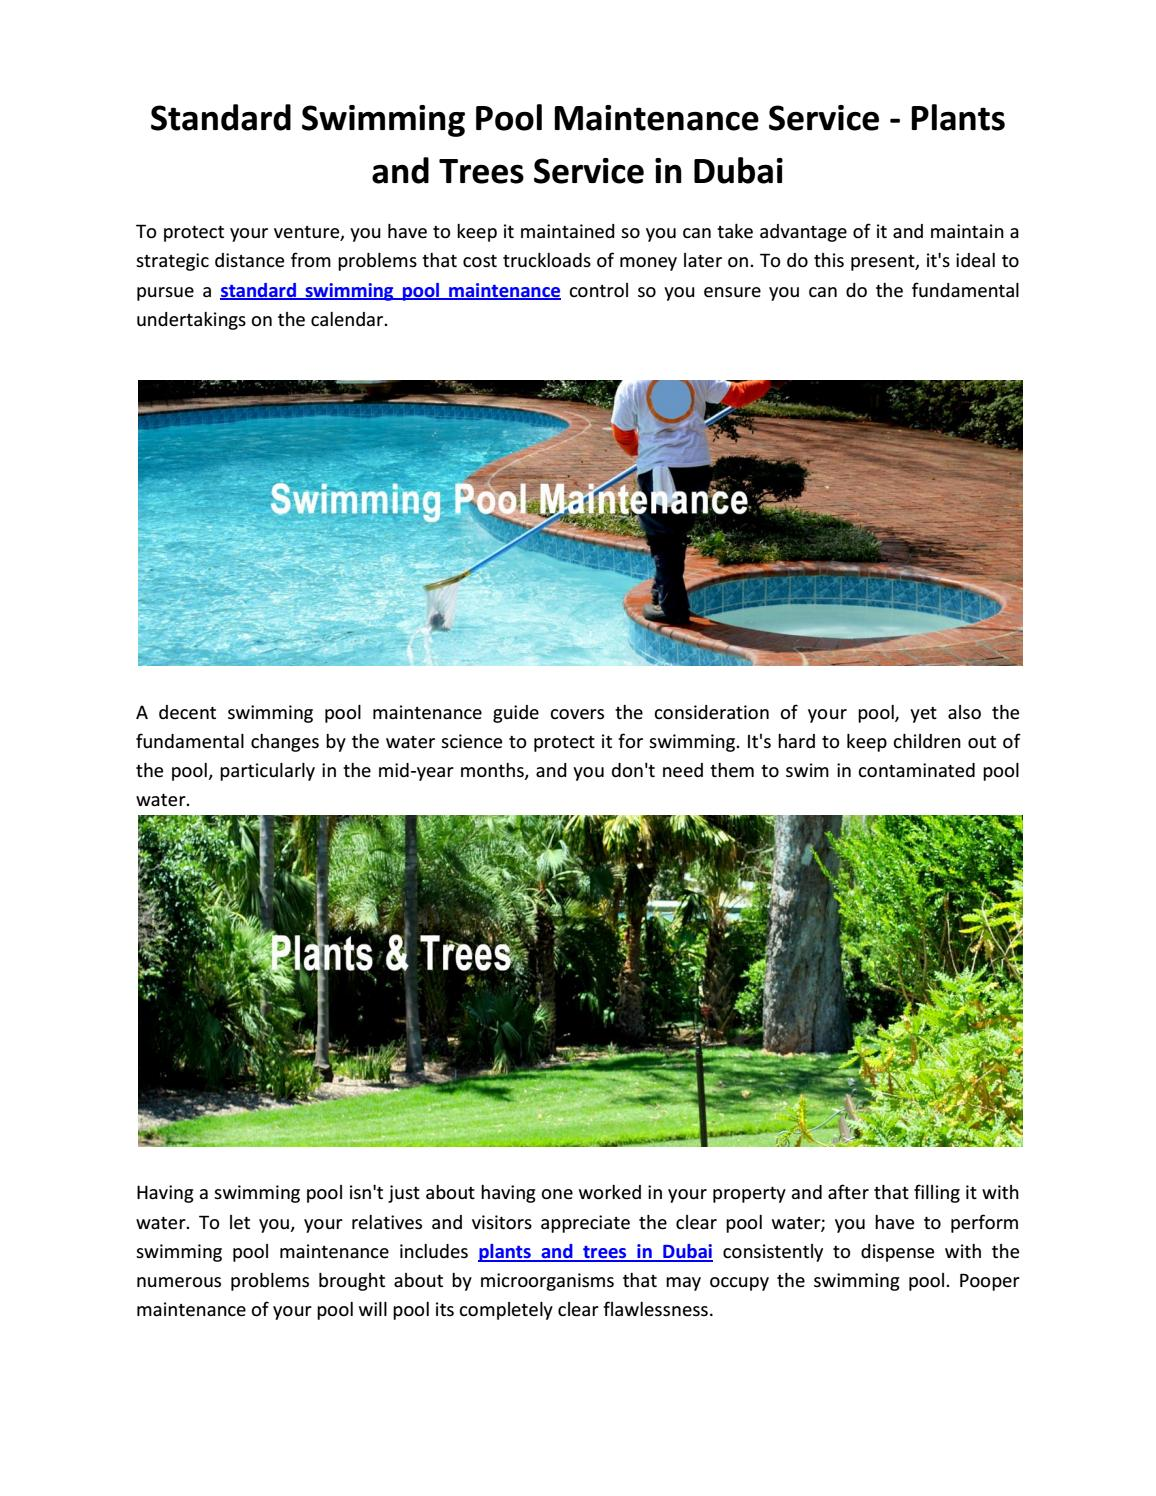 Standard Swimming Pool Maintenance Service - Plants and ...